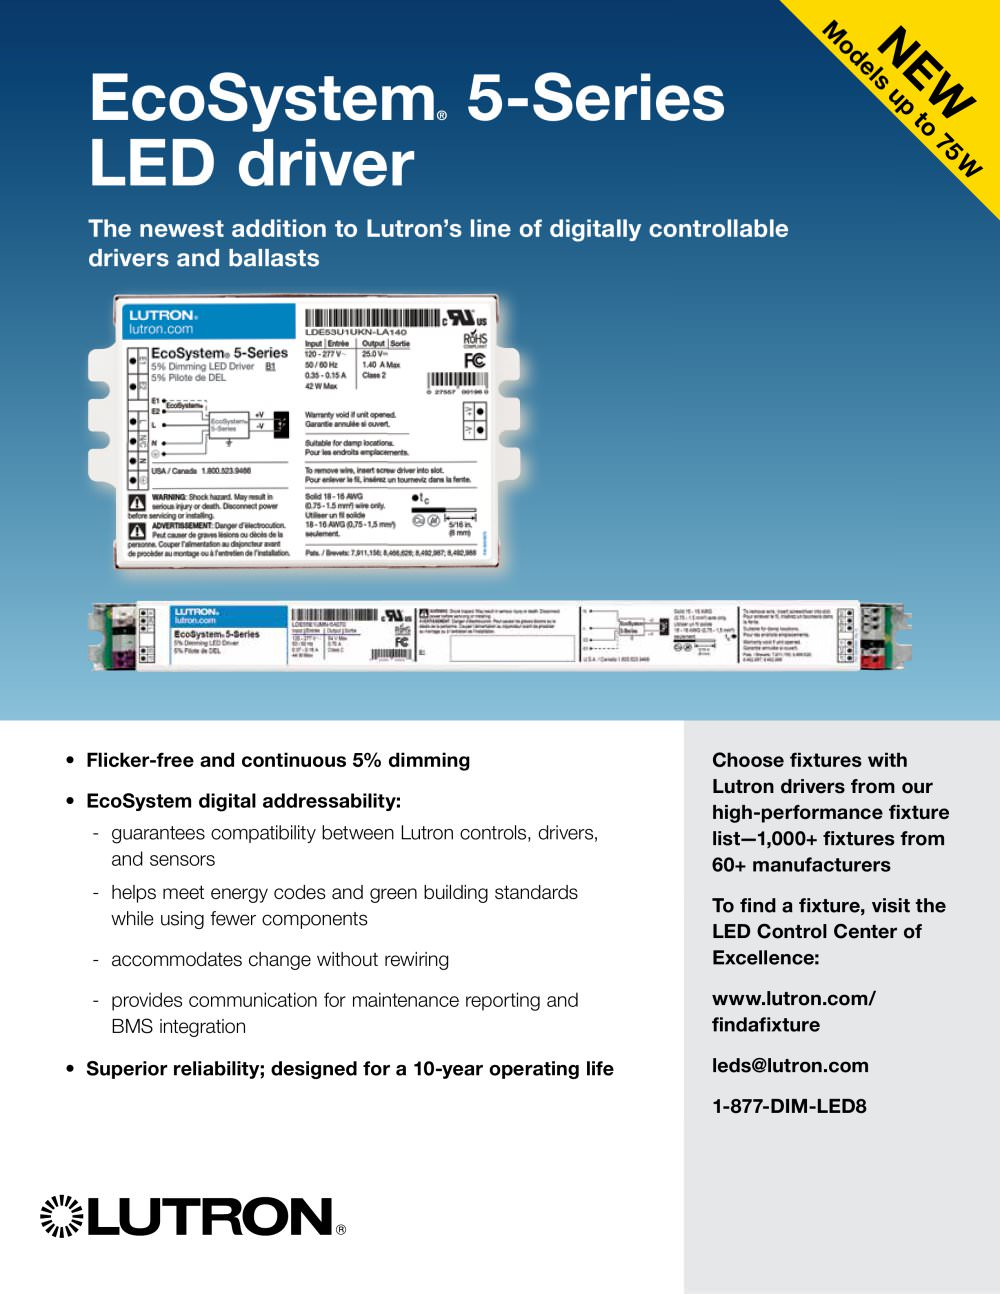 5-Series LED Driver with EcoSystem - LUTRON ELECTRONICS - PDF ...